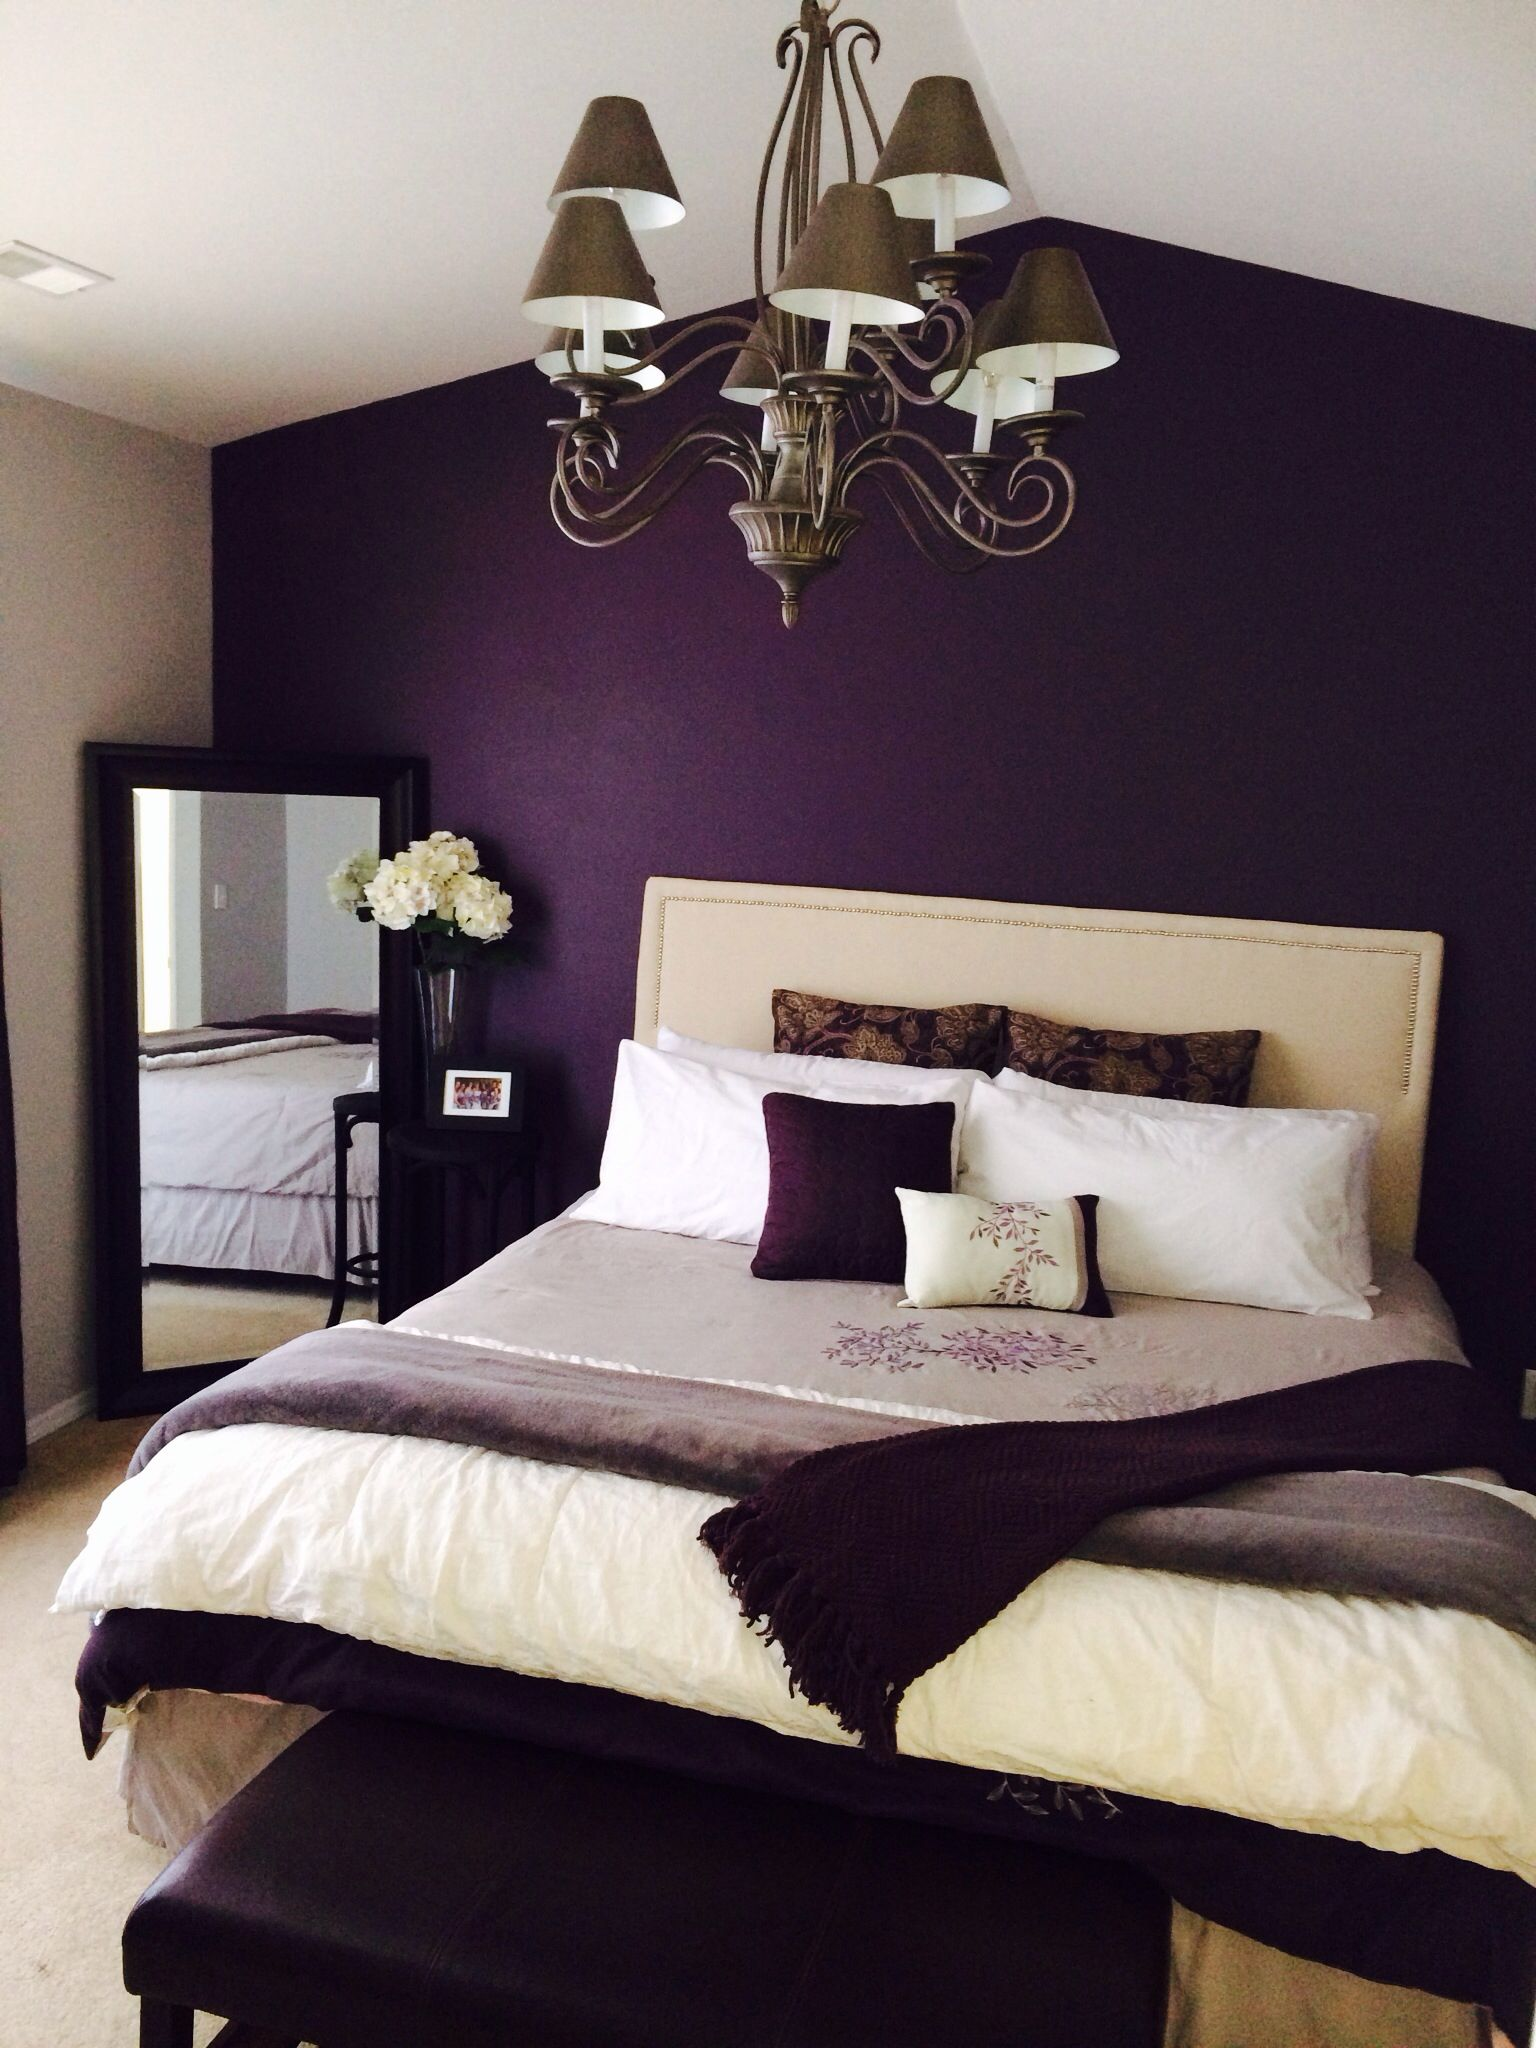 Bedroom Design Decor By Kelly Ann More Purple Walls